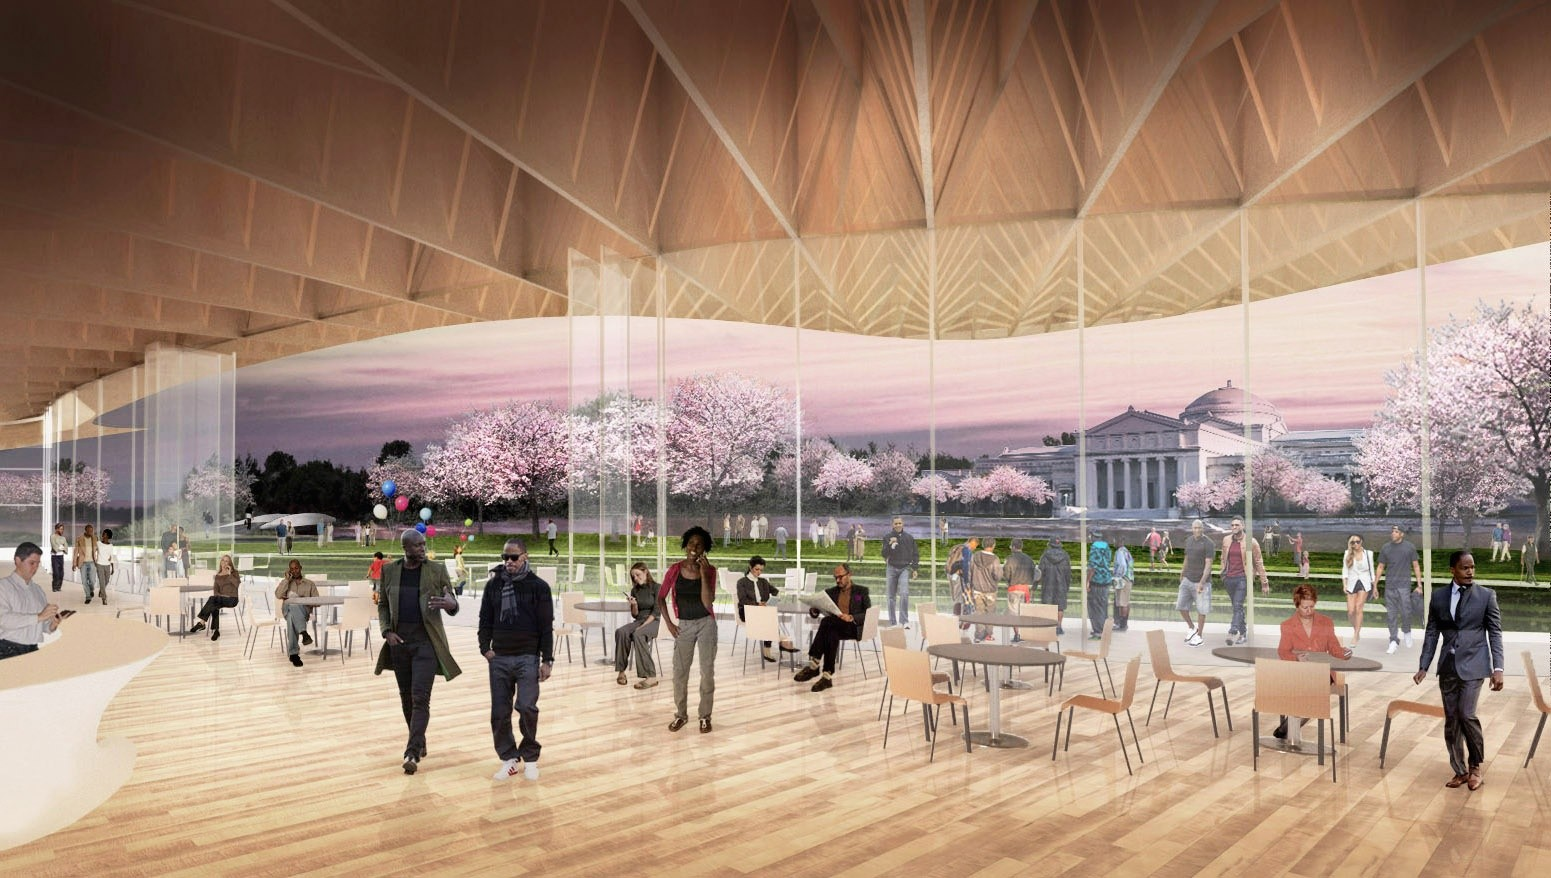 Pavilion Interior. Image Courtesy of Project 120 Chicago